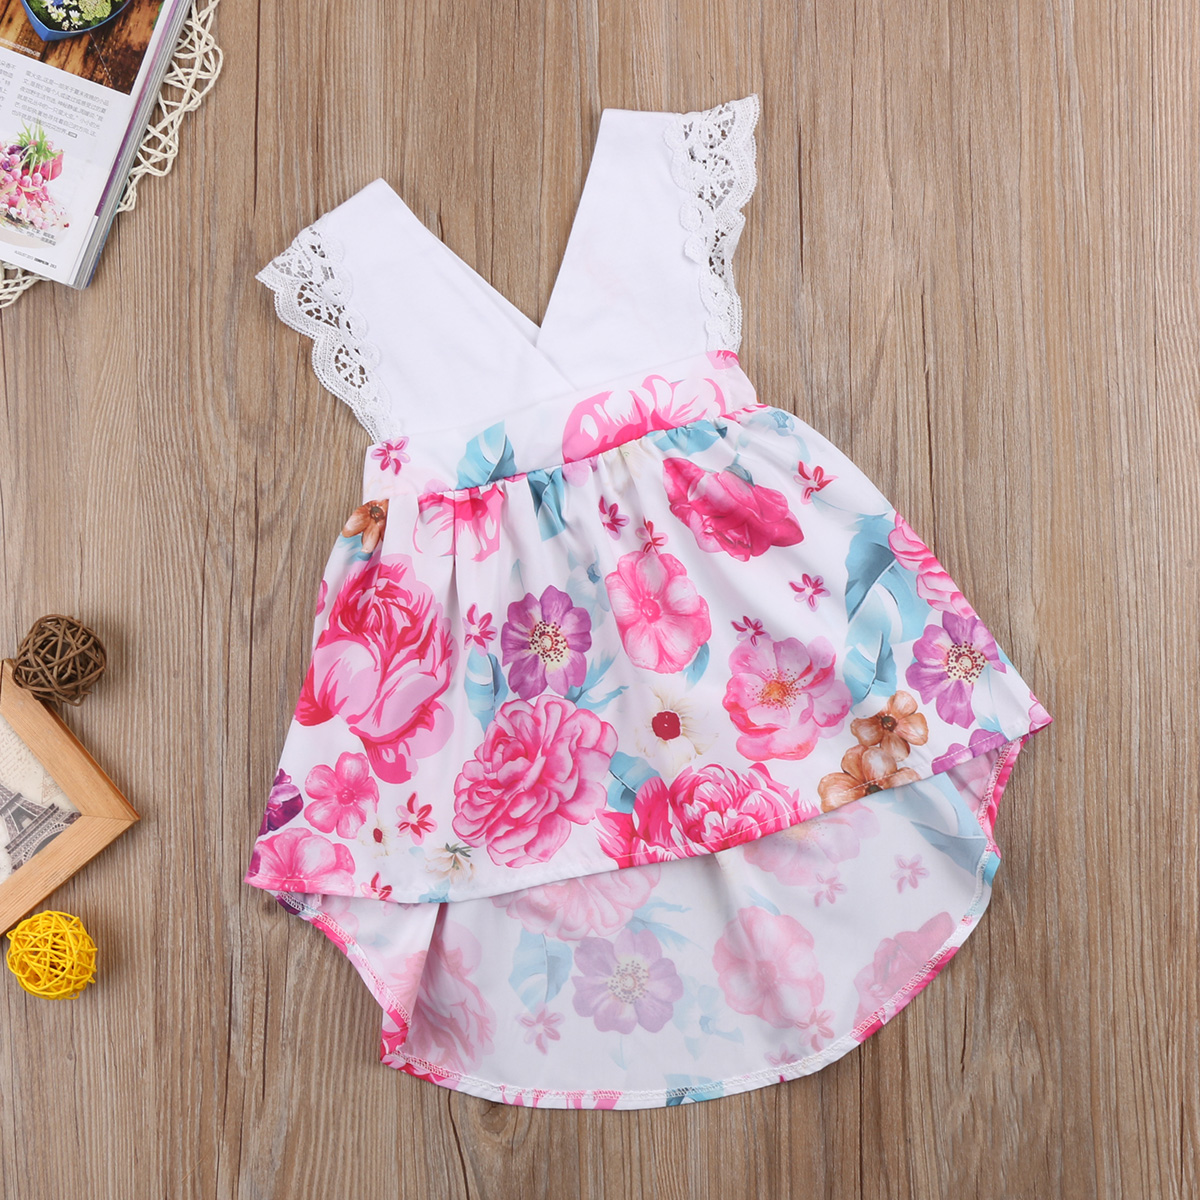 1ea51f0221d5 Lace Flower Baby Kids Girls Outfits Little Big Sister Matching Rompers Tutu  Dresses Summer V necK Girls Clothes-in Matching Family Outfits from Mother  ...